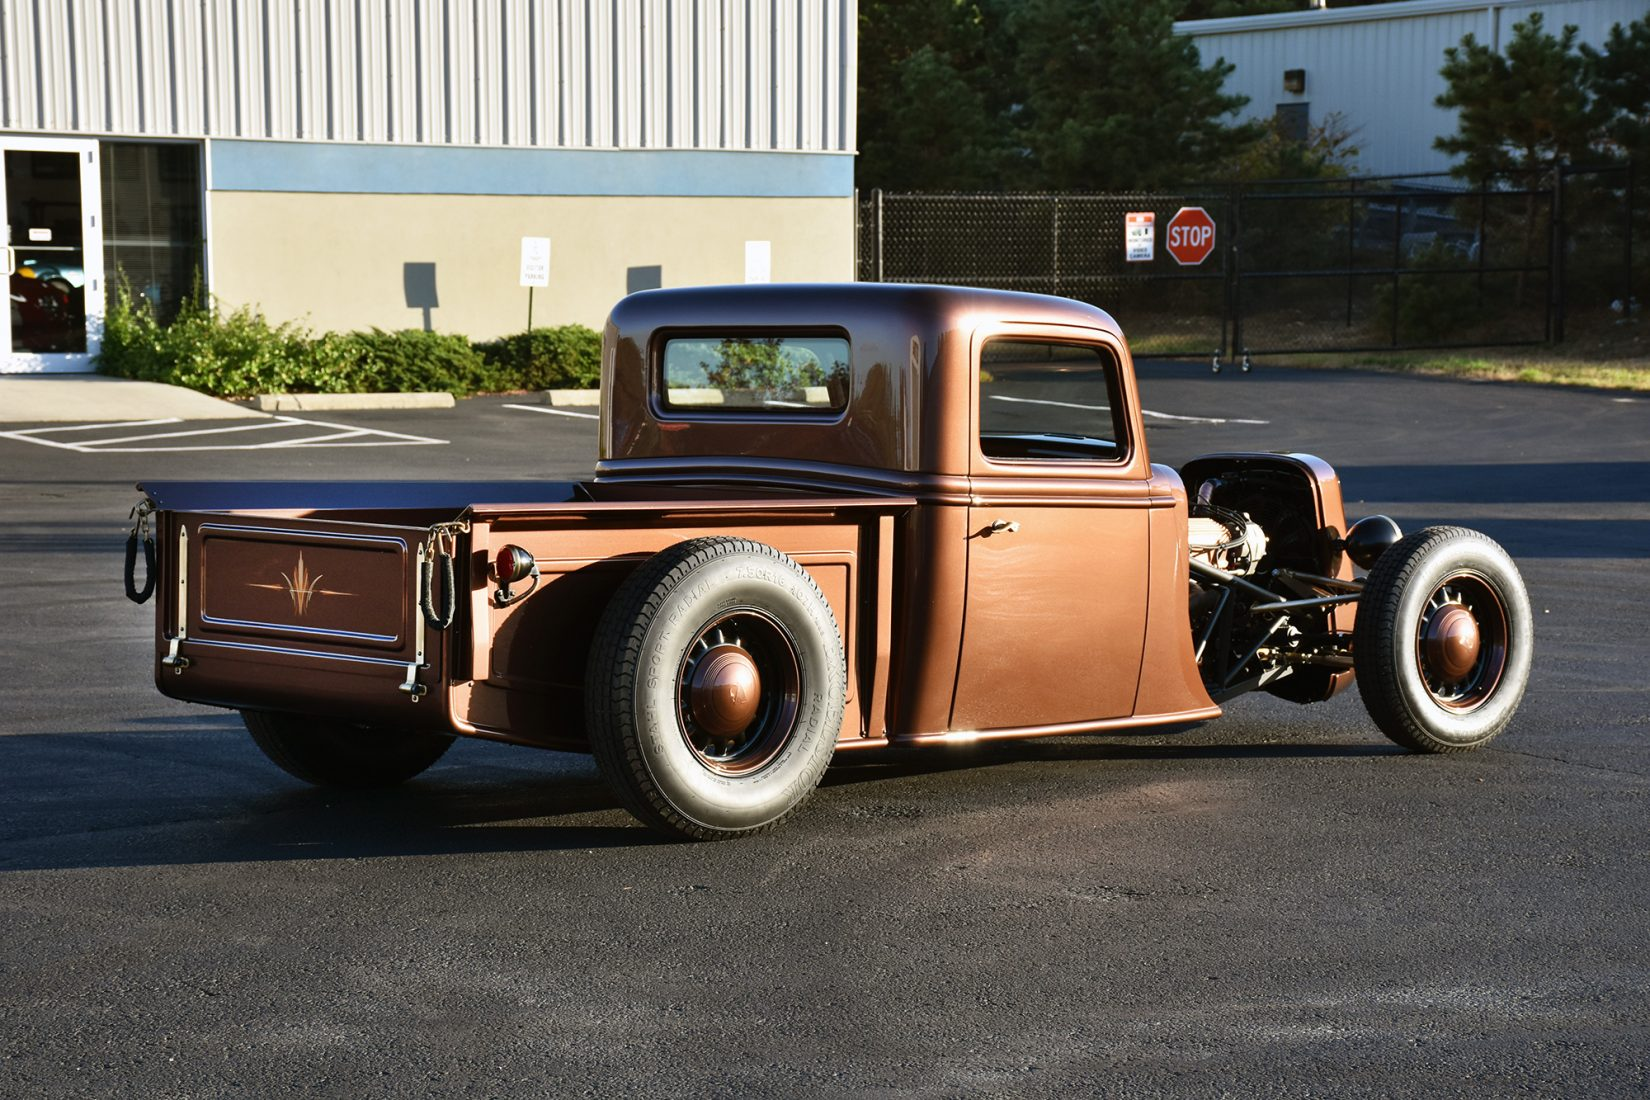 Factory fives 35 hot rod truck available to order soon is it possible ffr has been around for 23 years yup according to their website factory five racing was founded in 1995 over the years we have grown malvernweather Images